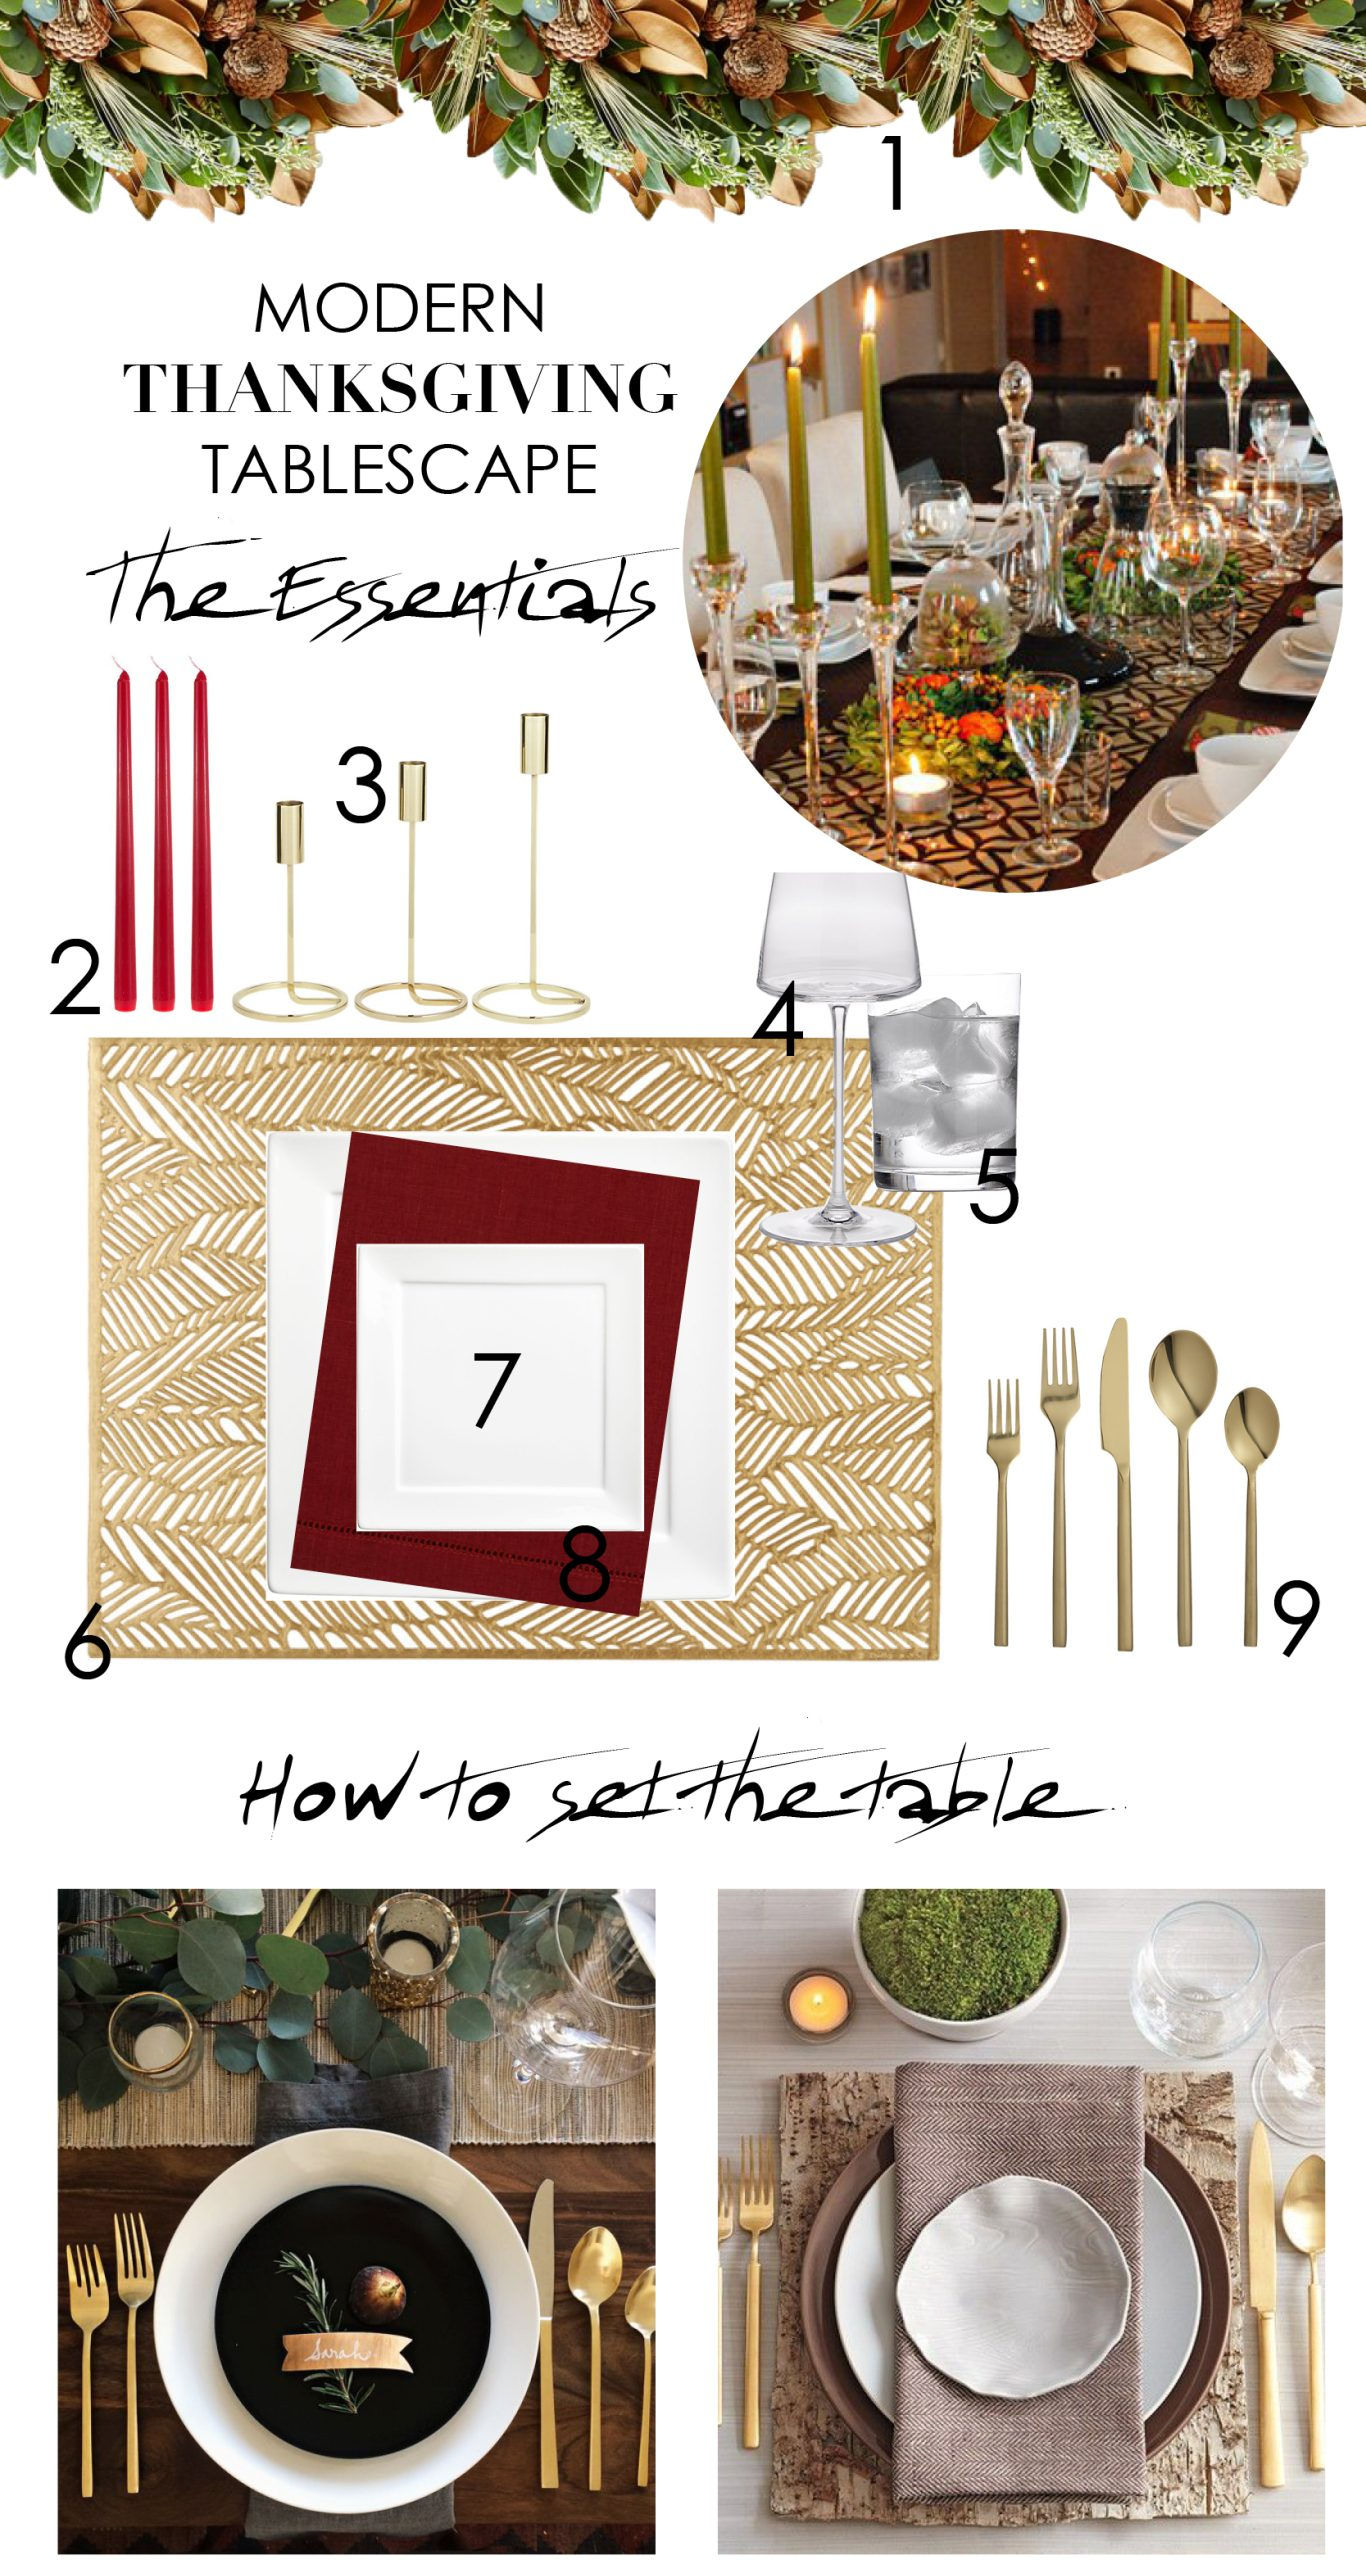 he Well-Dressed Table: Modern Holiday Tablescape Ideas